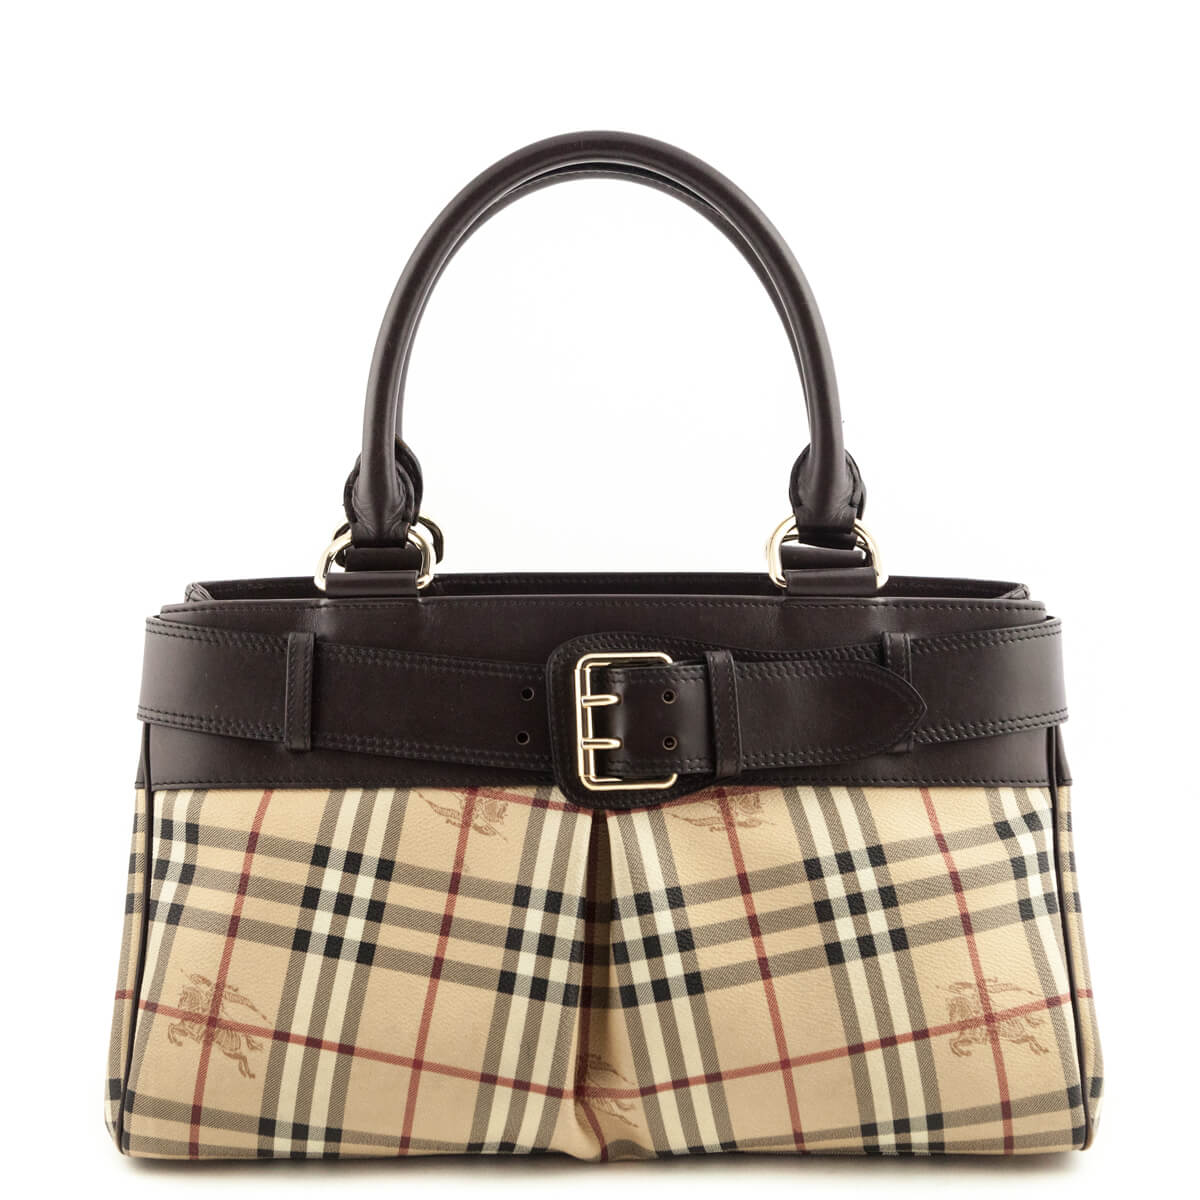 1440a209c394 Burberry Haymarket Check Leather-Trimmed Buckle tote - LOVE that BAG -  Preowned Authentic Designer ...